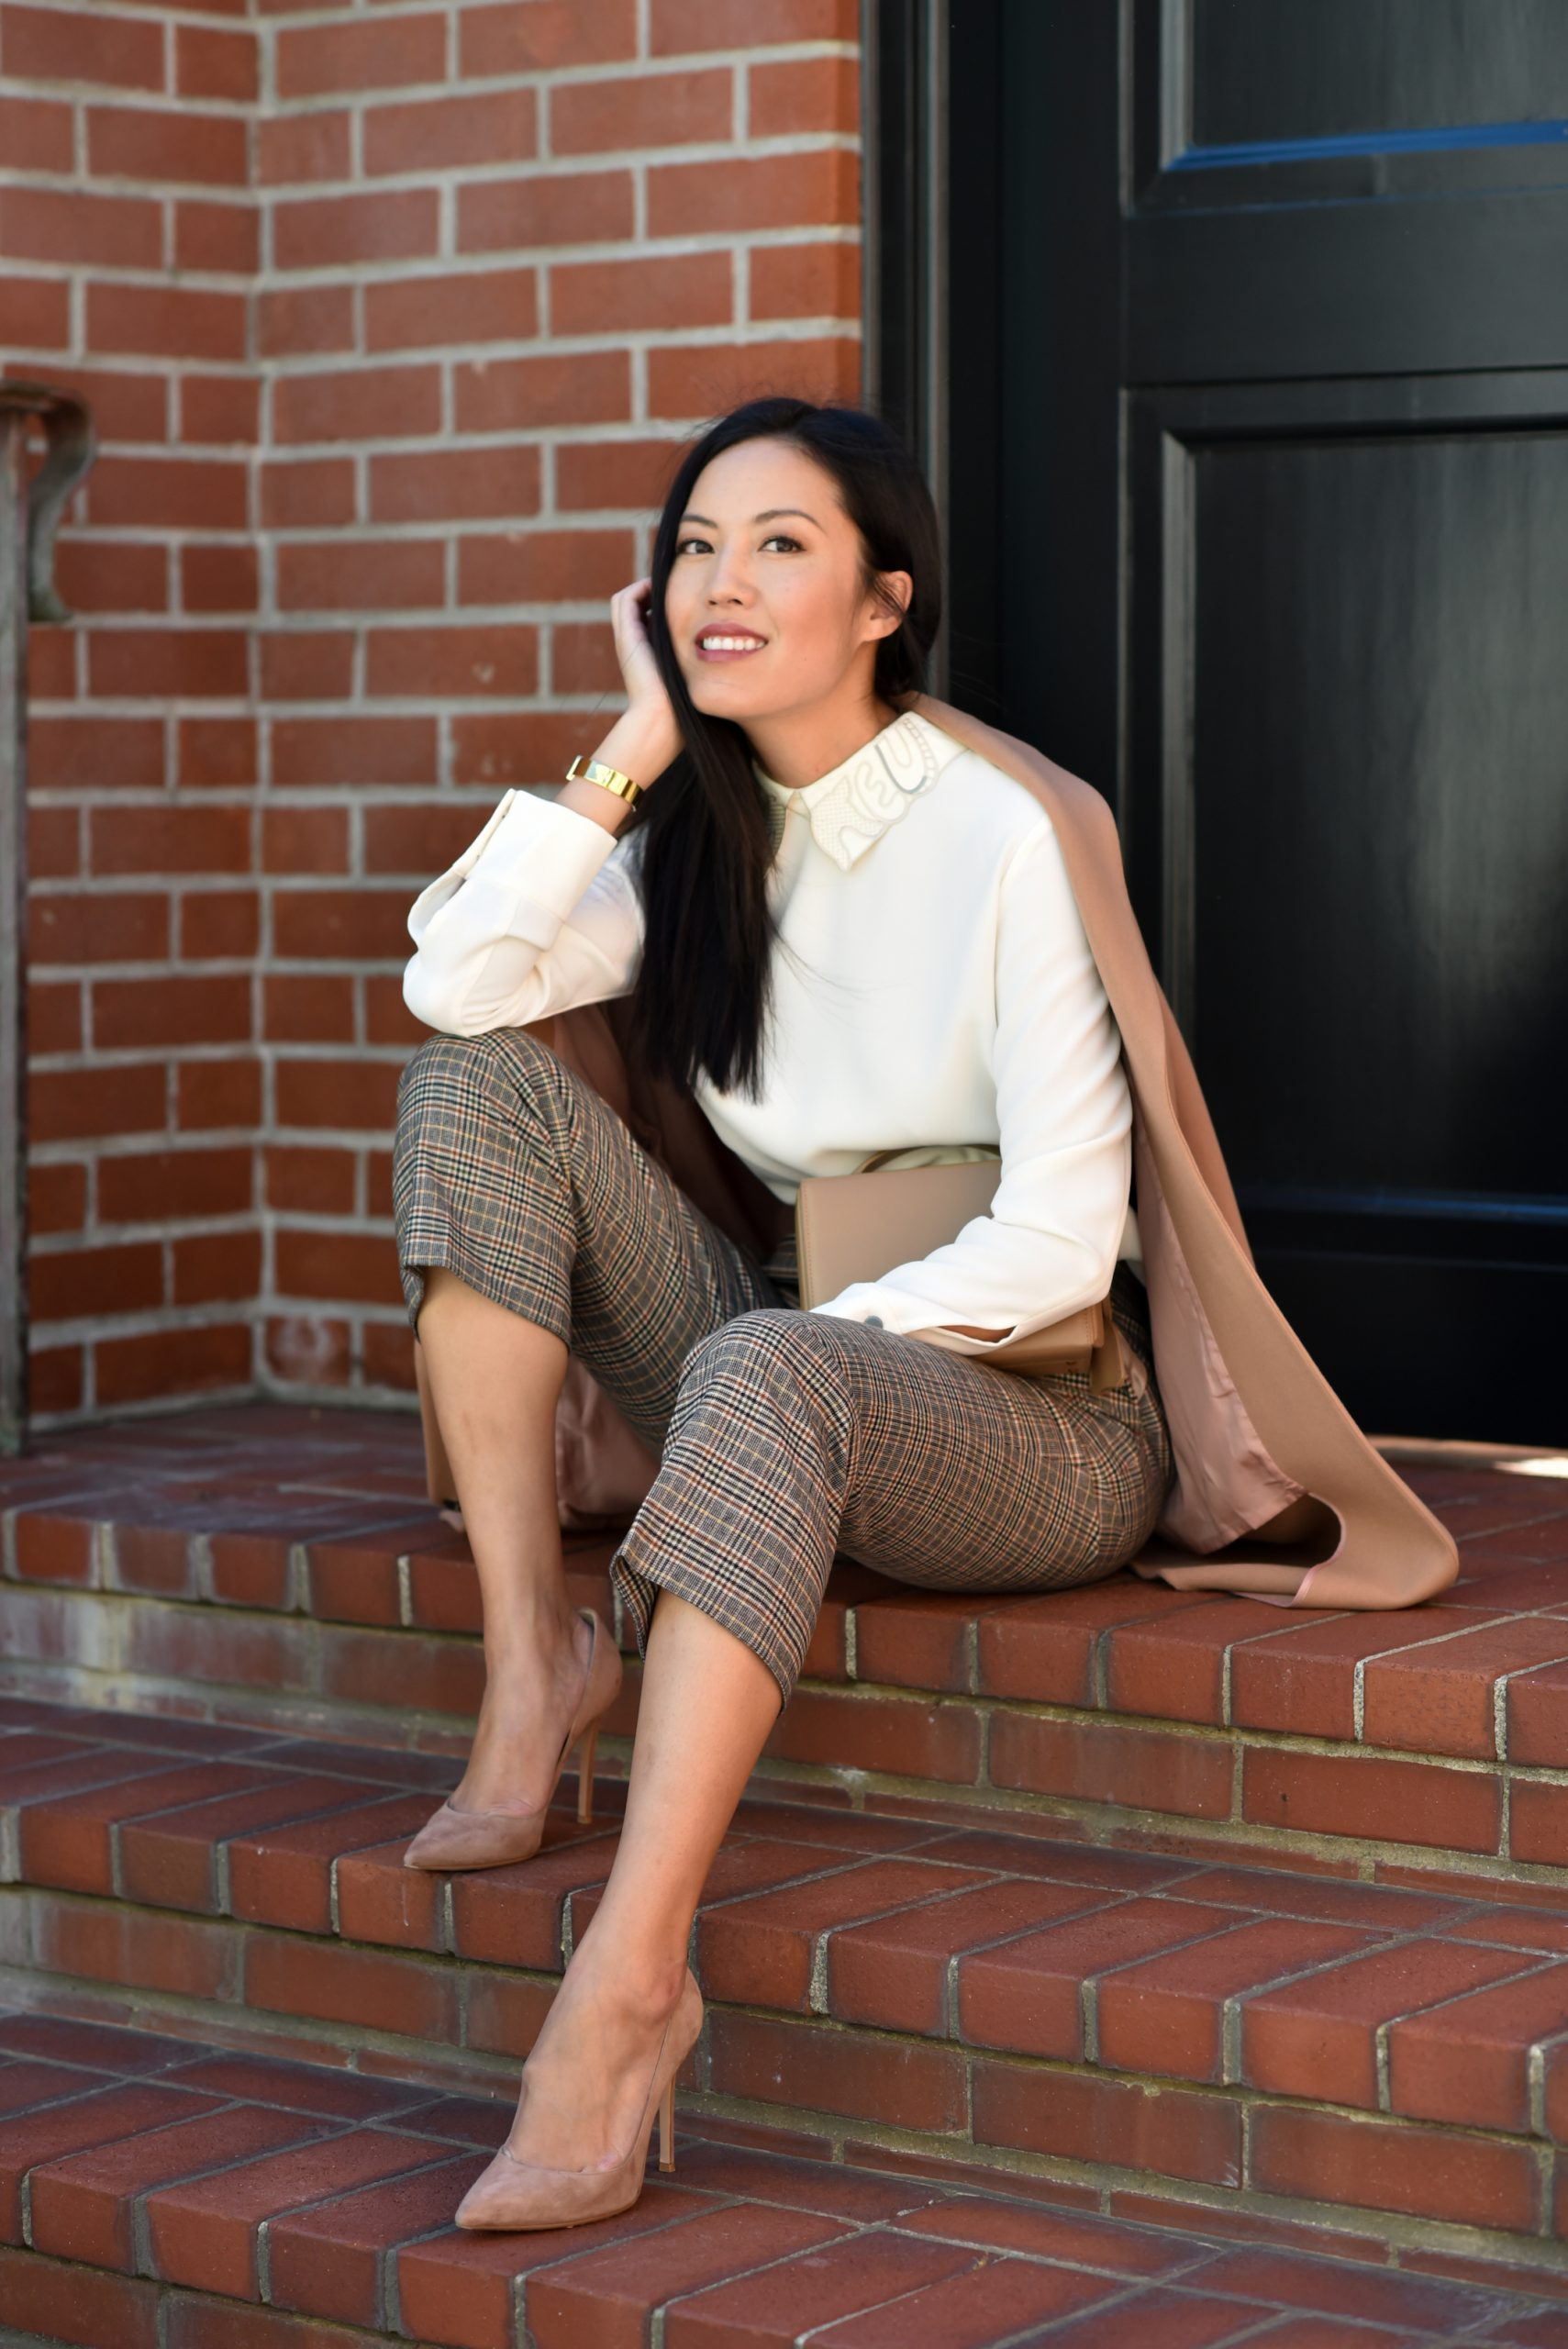 Best Work Outfit Ideas From Anh- 9to5Chic